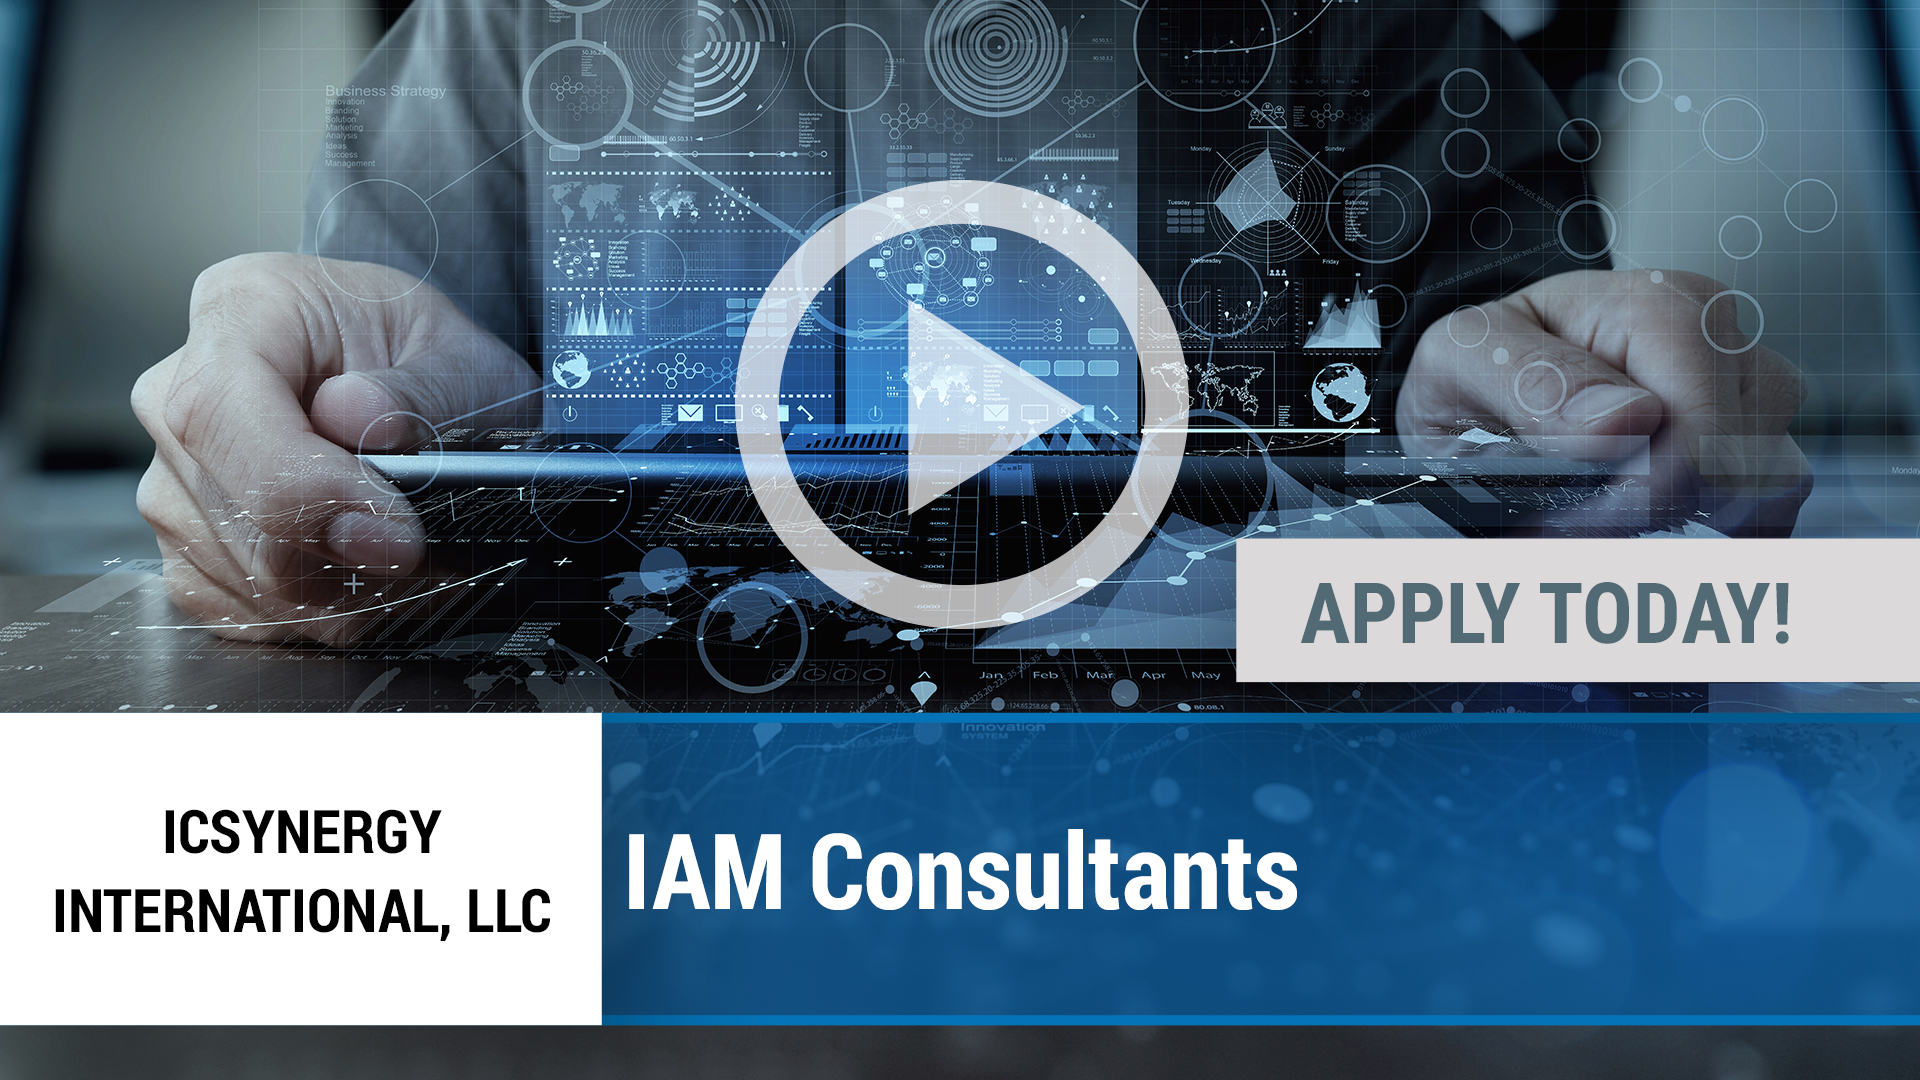 Watch our careers video for available job opening IAM Consultants in Plano, TX